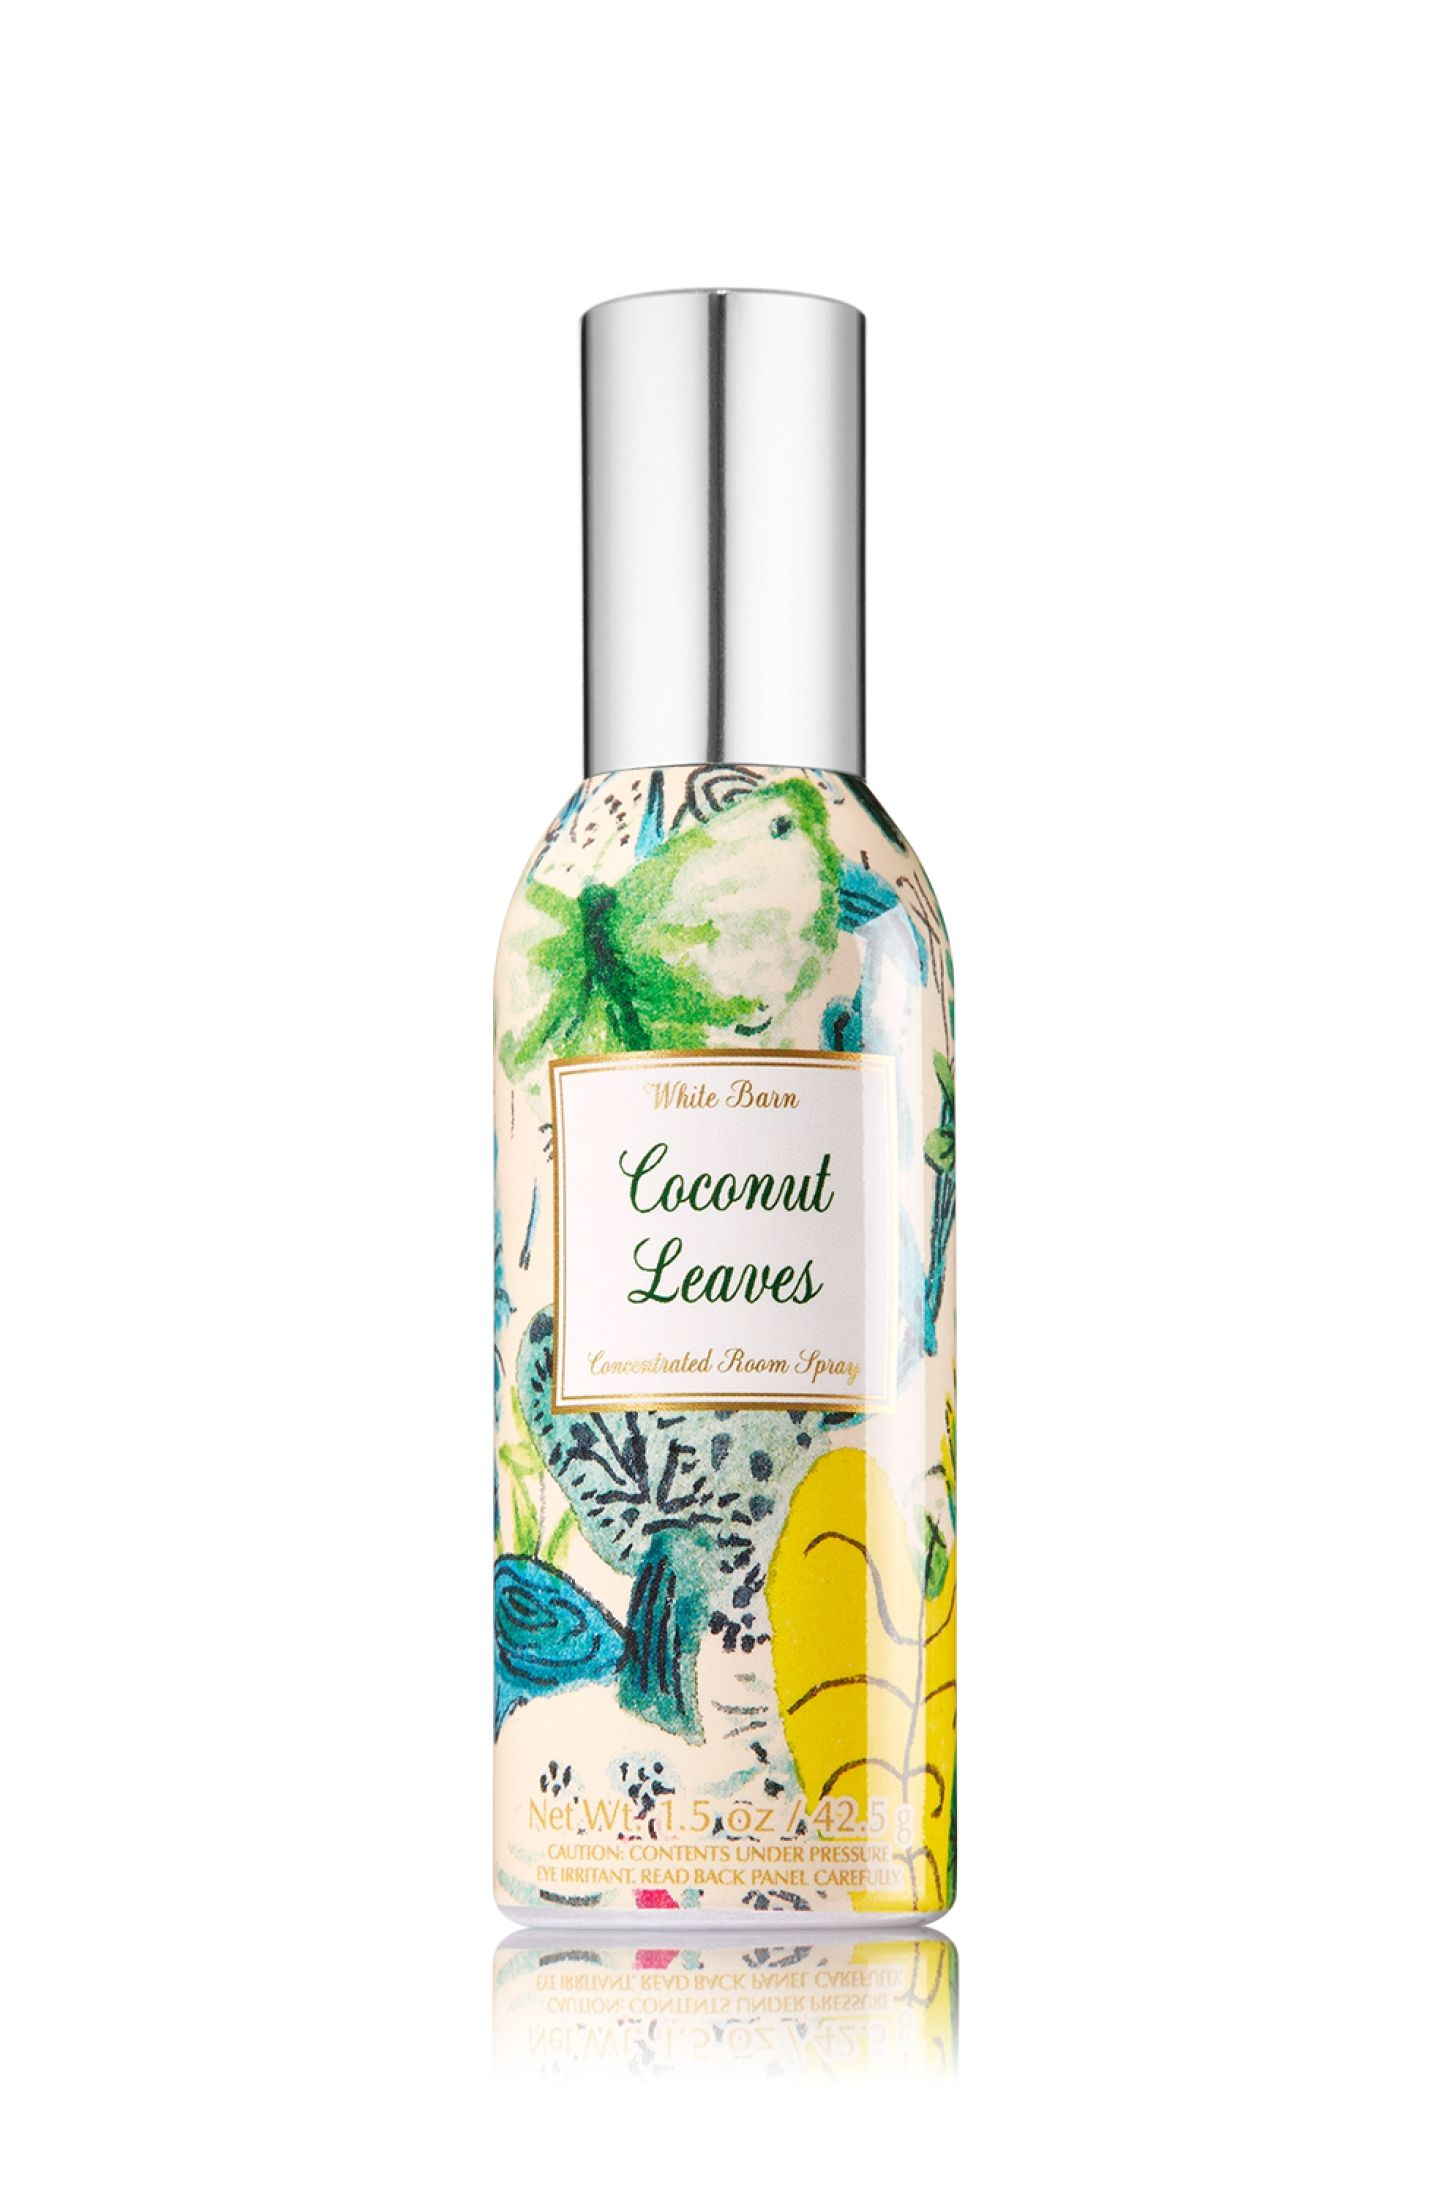 Coconut Leaves 1.5 oz. Room Perfume - Home Fragrance 1037181 - Bath & Body Works